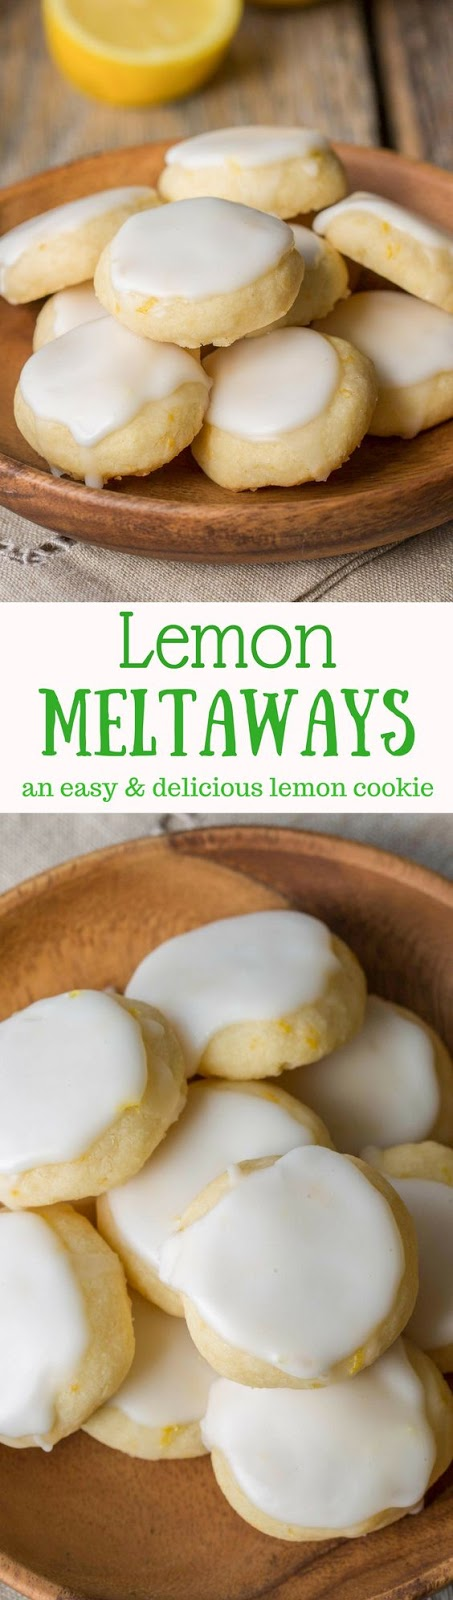 Lemon Meltaways   #DESSERTS #HEALTHYFOOD #EASYRECIPES #DINNER #LAUCH #DELICIOUS #EASY #HOLIDAYS #RECIPE #SPECIALDIET #WORLDCUISINE #CAKE #APPETIZERS #HEALTHYRECIPES #DRINKS #COOKINGMETHOD #ITALIANRECIPES #MEAT #VEGANRECIPES #COOKIES #PASTA #FRUIT #SALAD #SOUPAPPETIZERS #NONALCOHOLICDRINKS #MEALPLANNING #VEGETABLES #SOUP #PASTRY #CHOCOLATE #DAIRY #ALCOHOLICDRINKS #BULGURSALAD #BAKING #SNACKS #BEEFRECIPES #MEATAPPETIZERS #MEXICANRECIPES #BREAD #ASIANRECIPES #SEAFOODAPPETIZERS #MUFFINS #BREAKFASTANDBRUNCH #CONDIMENTS #CUPCAKES #CHEESE #CHICKENRECIPES #PIE #COFFEE #NOBAKEDESSERTS #HEALTHYSNACKS #SEAFOOD #GRAIN #LUNCHESDINNERS #MEXICAN #QUICKBREAD #LIQUOR